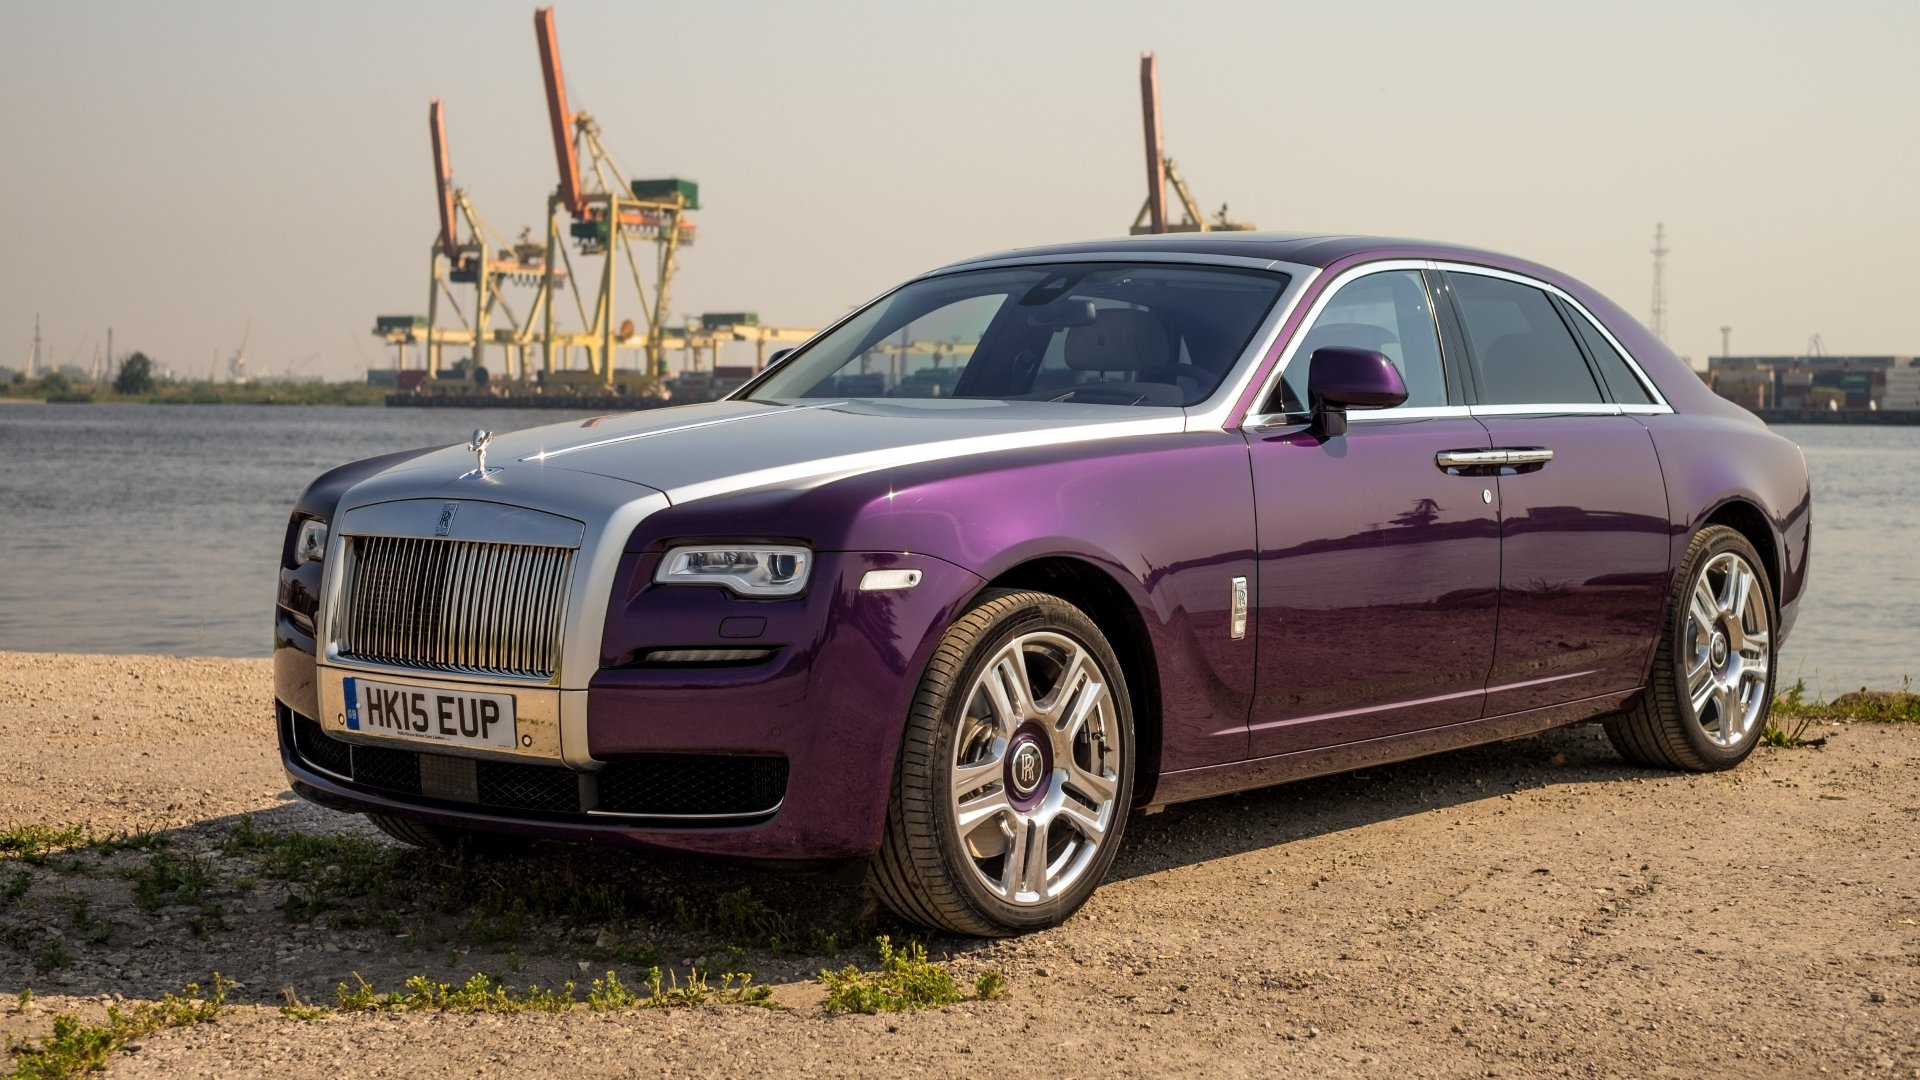 23 4k Ultra Hd Rolls Royce Ghost Wallpapers Background Images Wallpaper Abyss